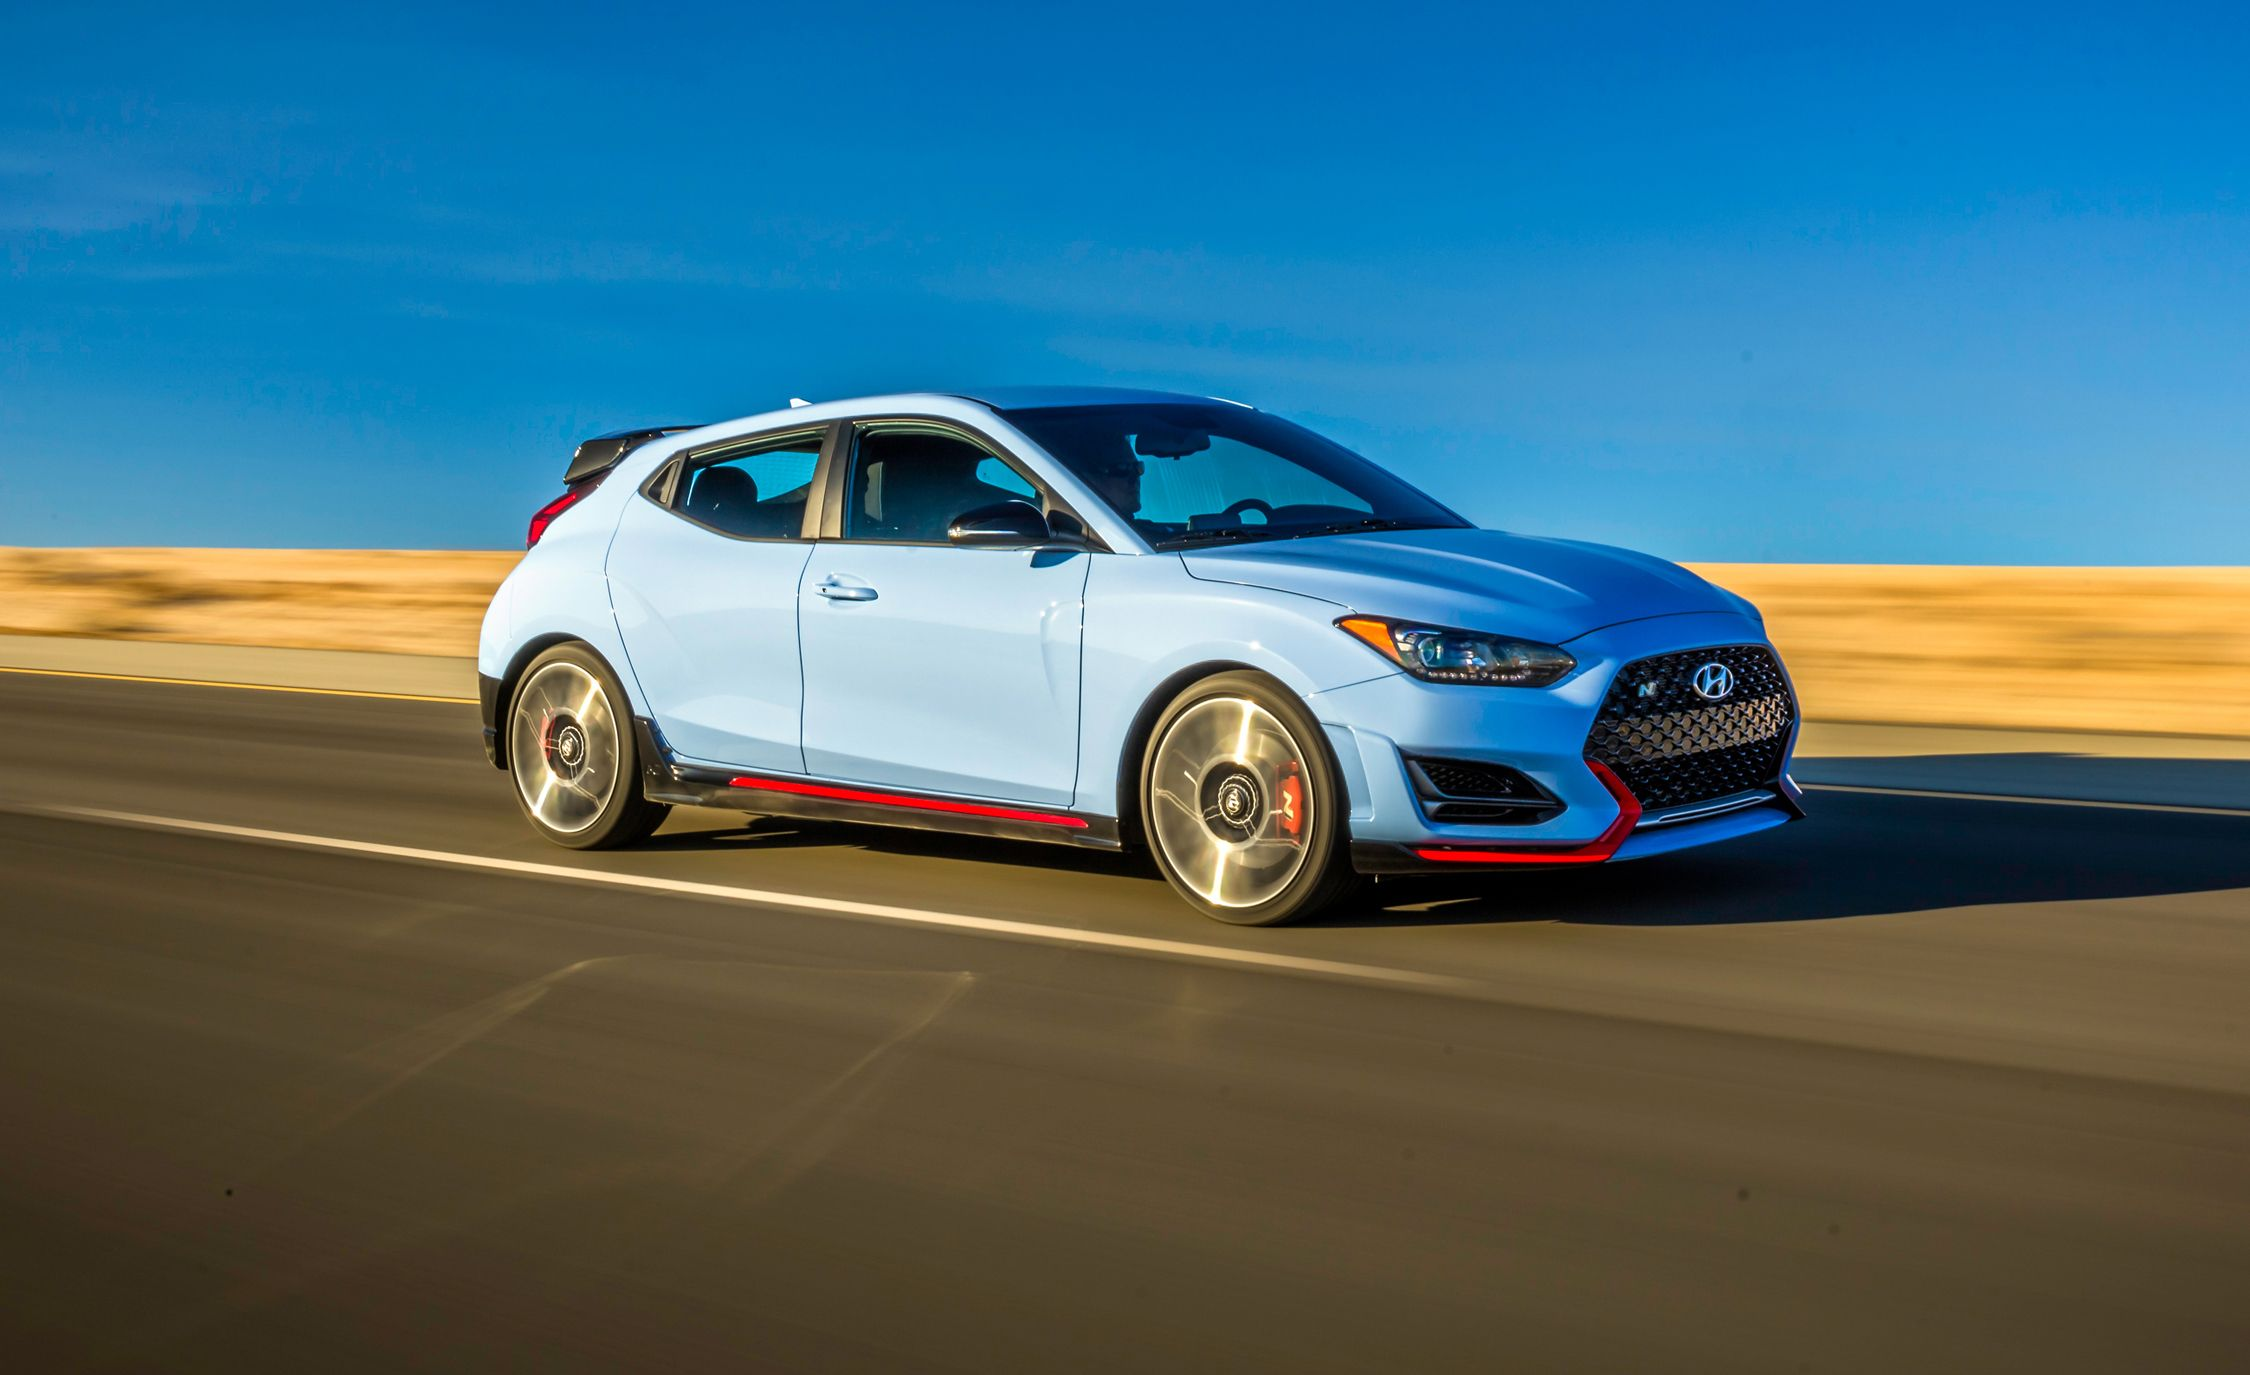 2019 Hyundai Veloster N: This Is Hyundai's Hottest Ever Hatch